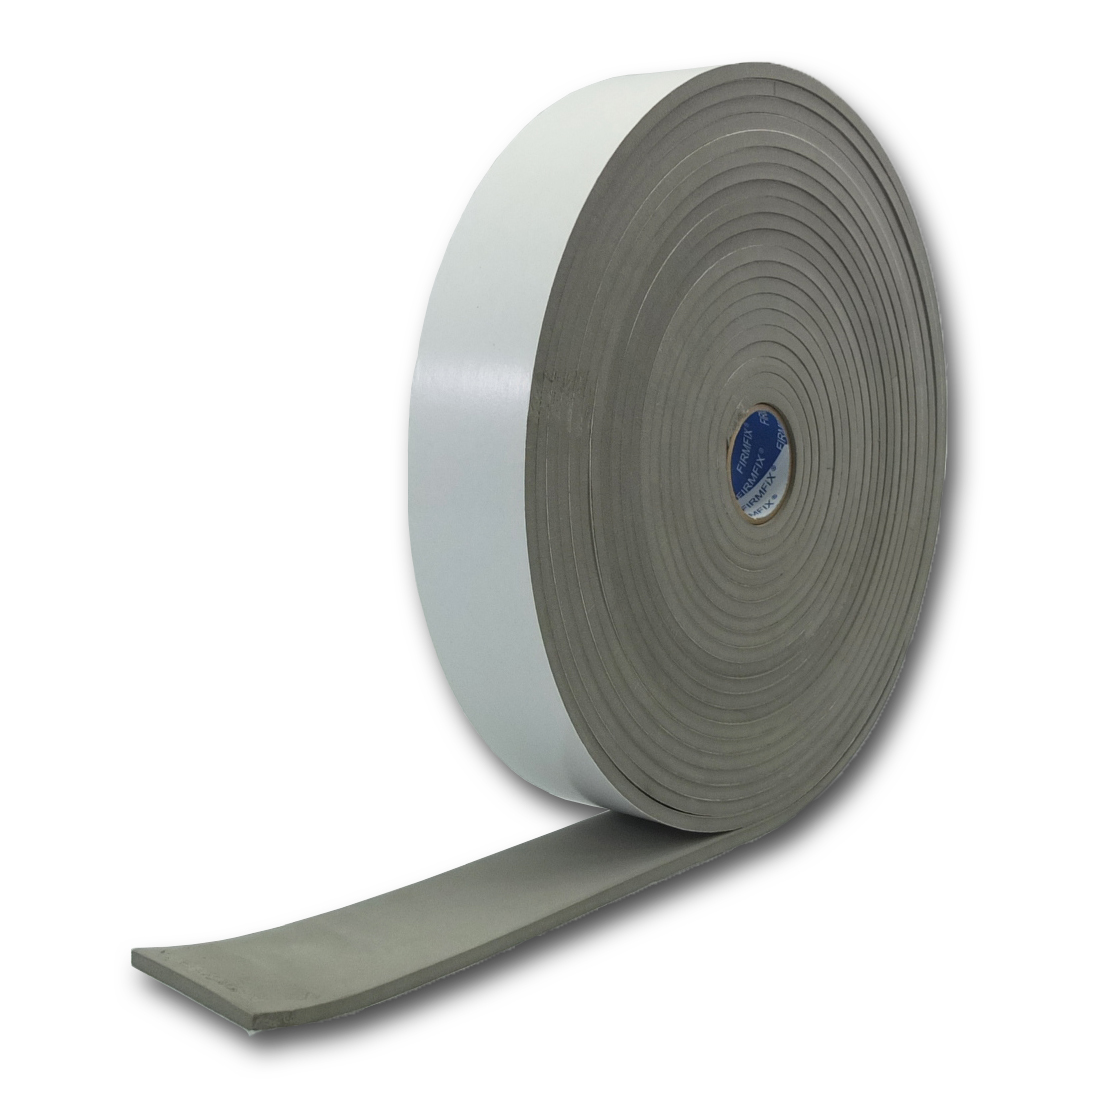 Single-sided Foam Tapes